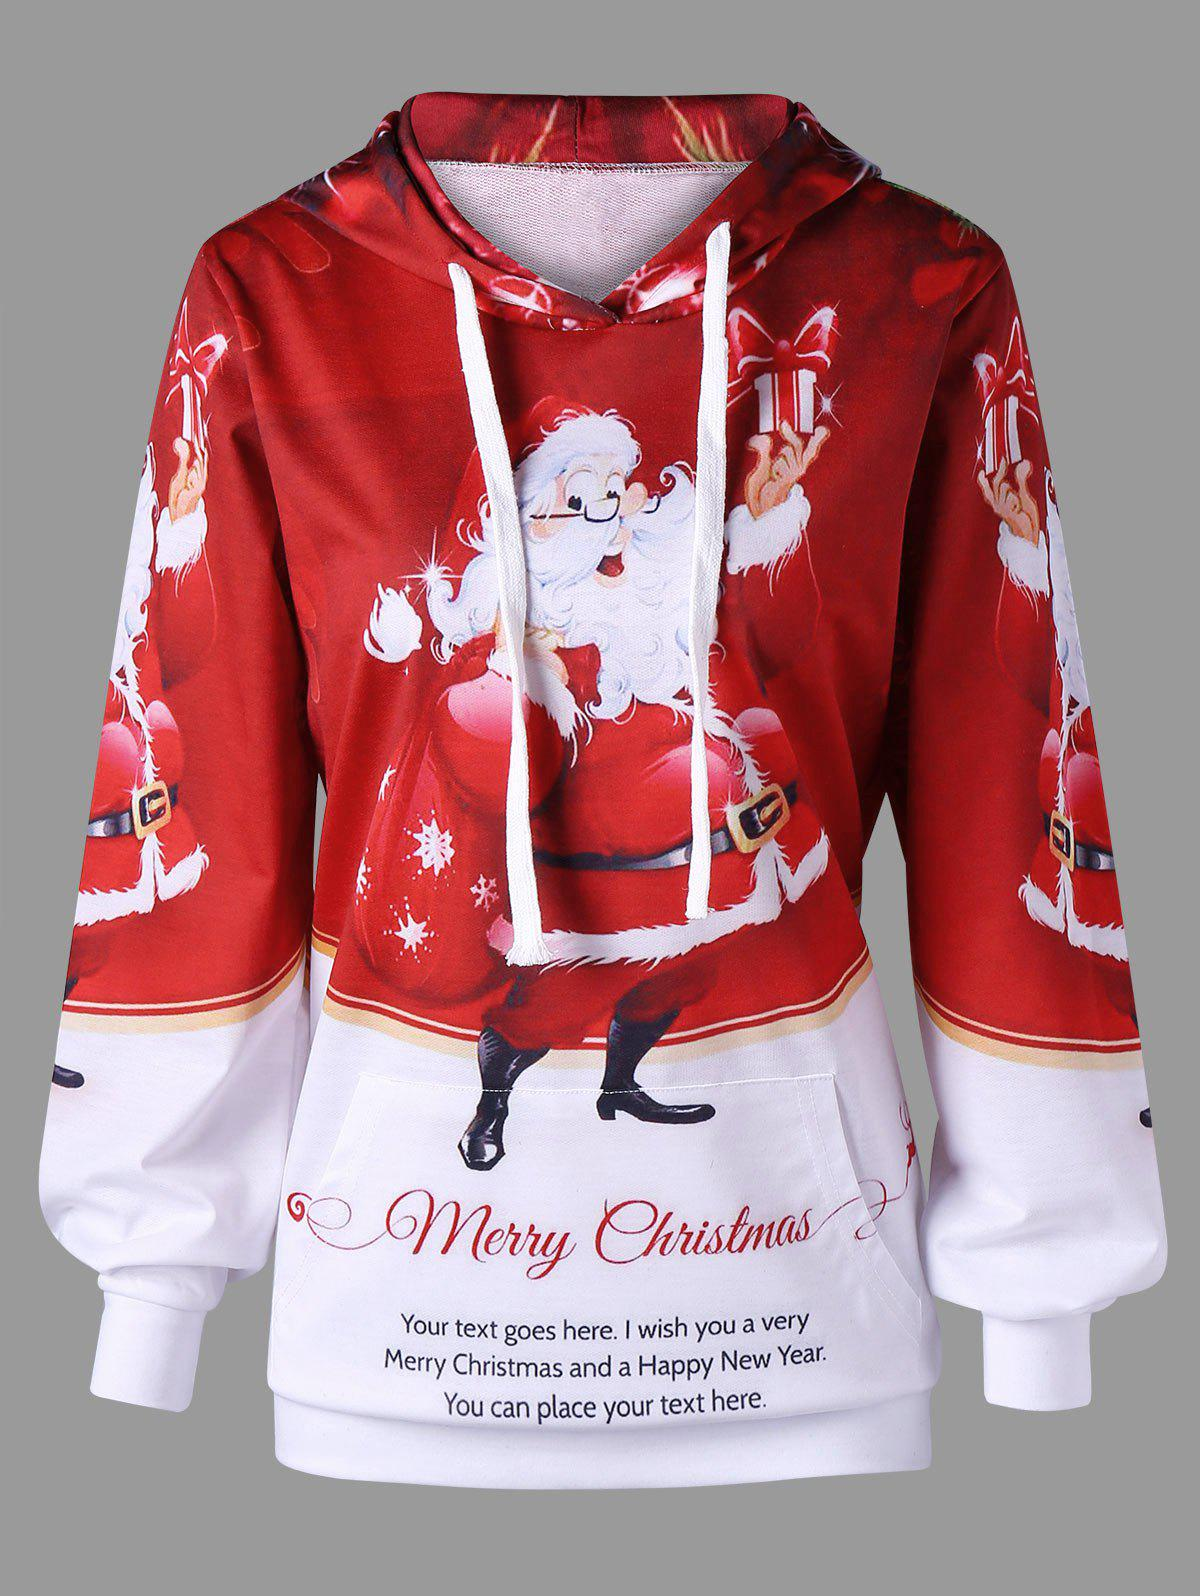 Santa Claus Print Kangaroo Pocket Christmas HoodieWOMEN<br><br>Size: M; Color: RED AND WHITE; Material: Polyester,Spandex; Shirt Length: Regular; Sleeve Length: Full; Style: Active; Pattern Style: Print; Embellishment: Front Pocket; Elasticity: Micro-elastic; Season: Fall,Spring,Winter; Weight: 0.3200kg; Package Contents: 1 x Hoodie;